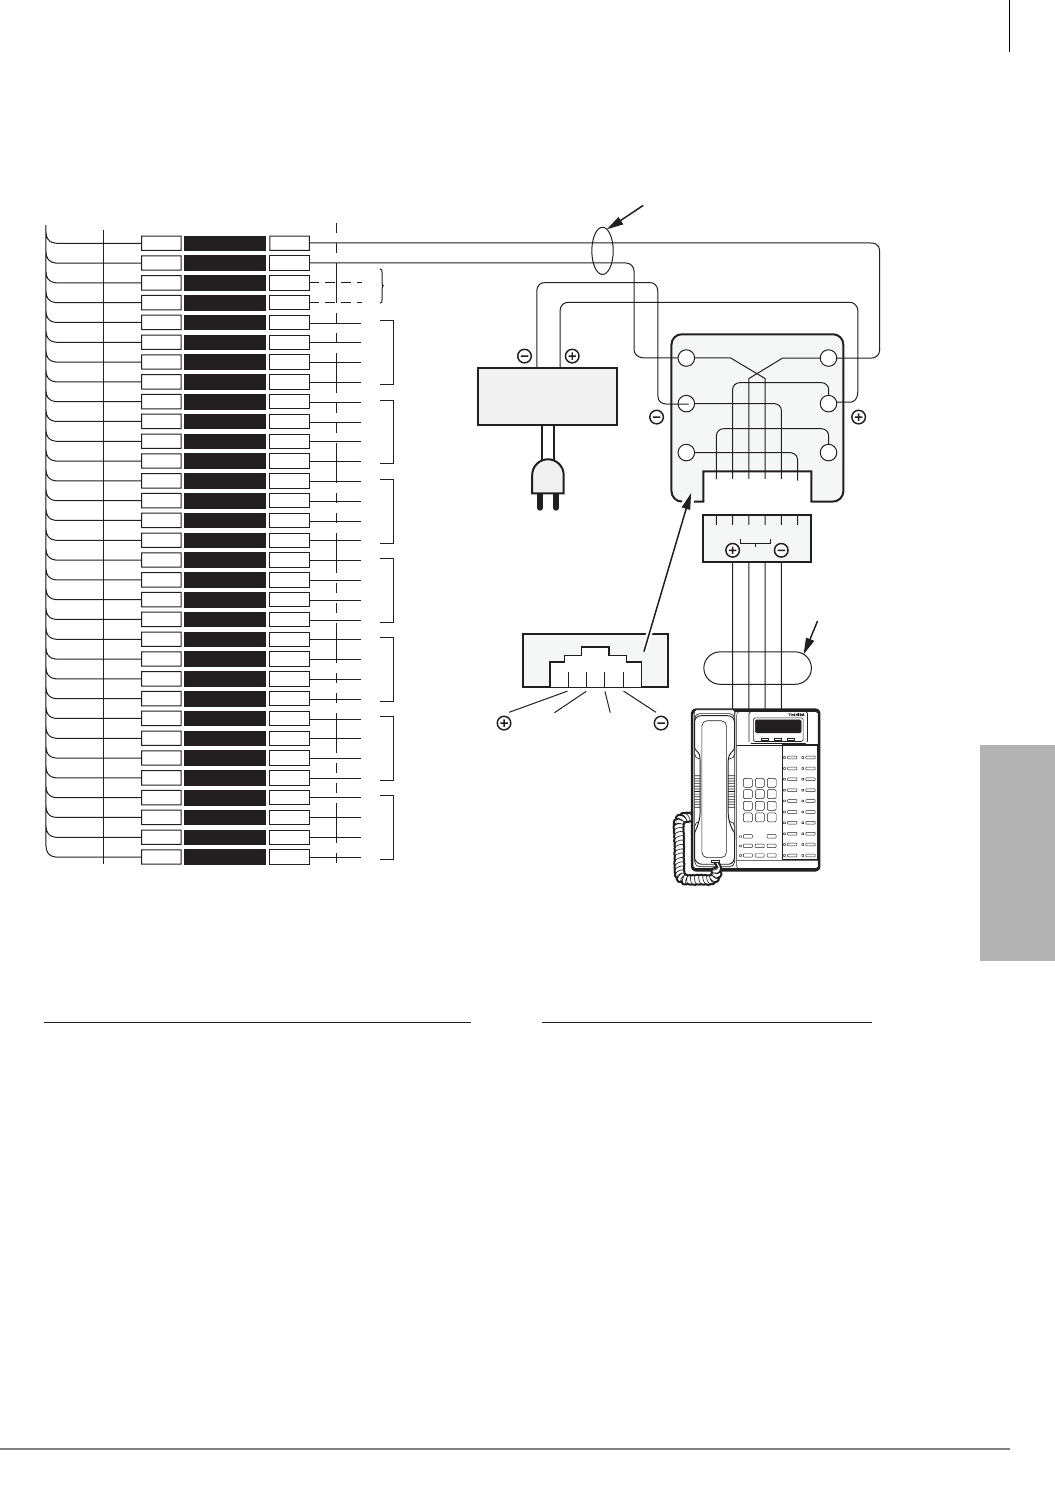 page 381 of toshiba telephone ctx28 user guide manualsonline com mdf pcb wiring station wiring diagrams